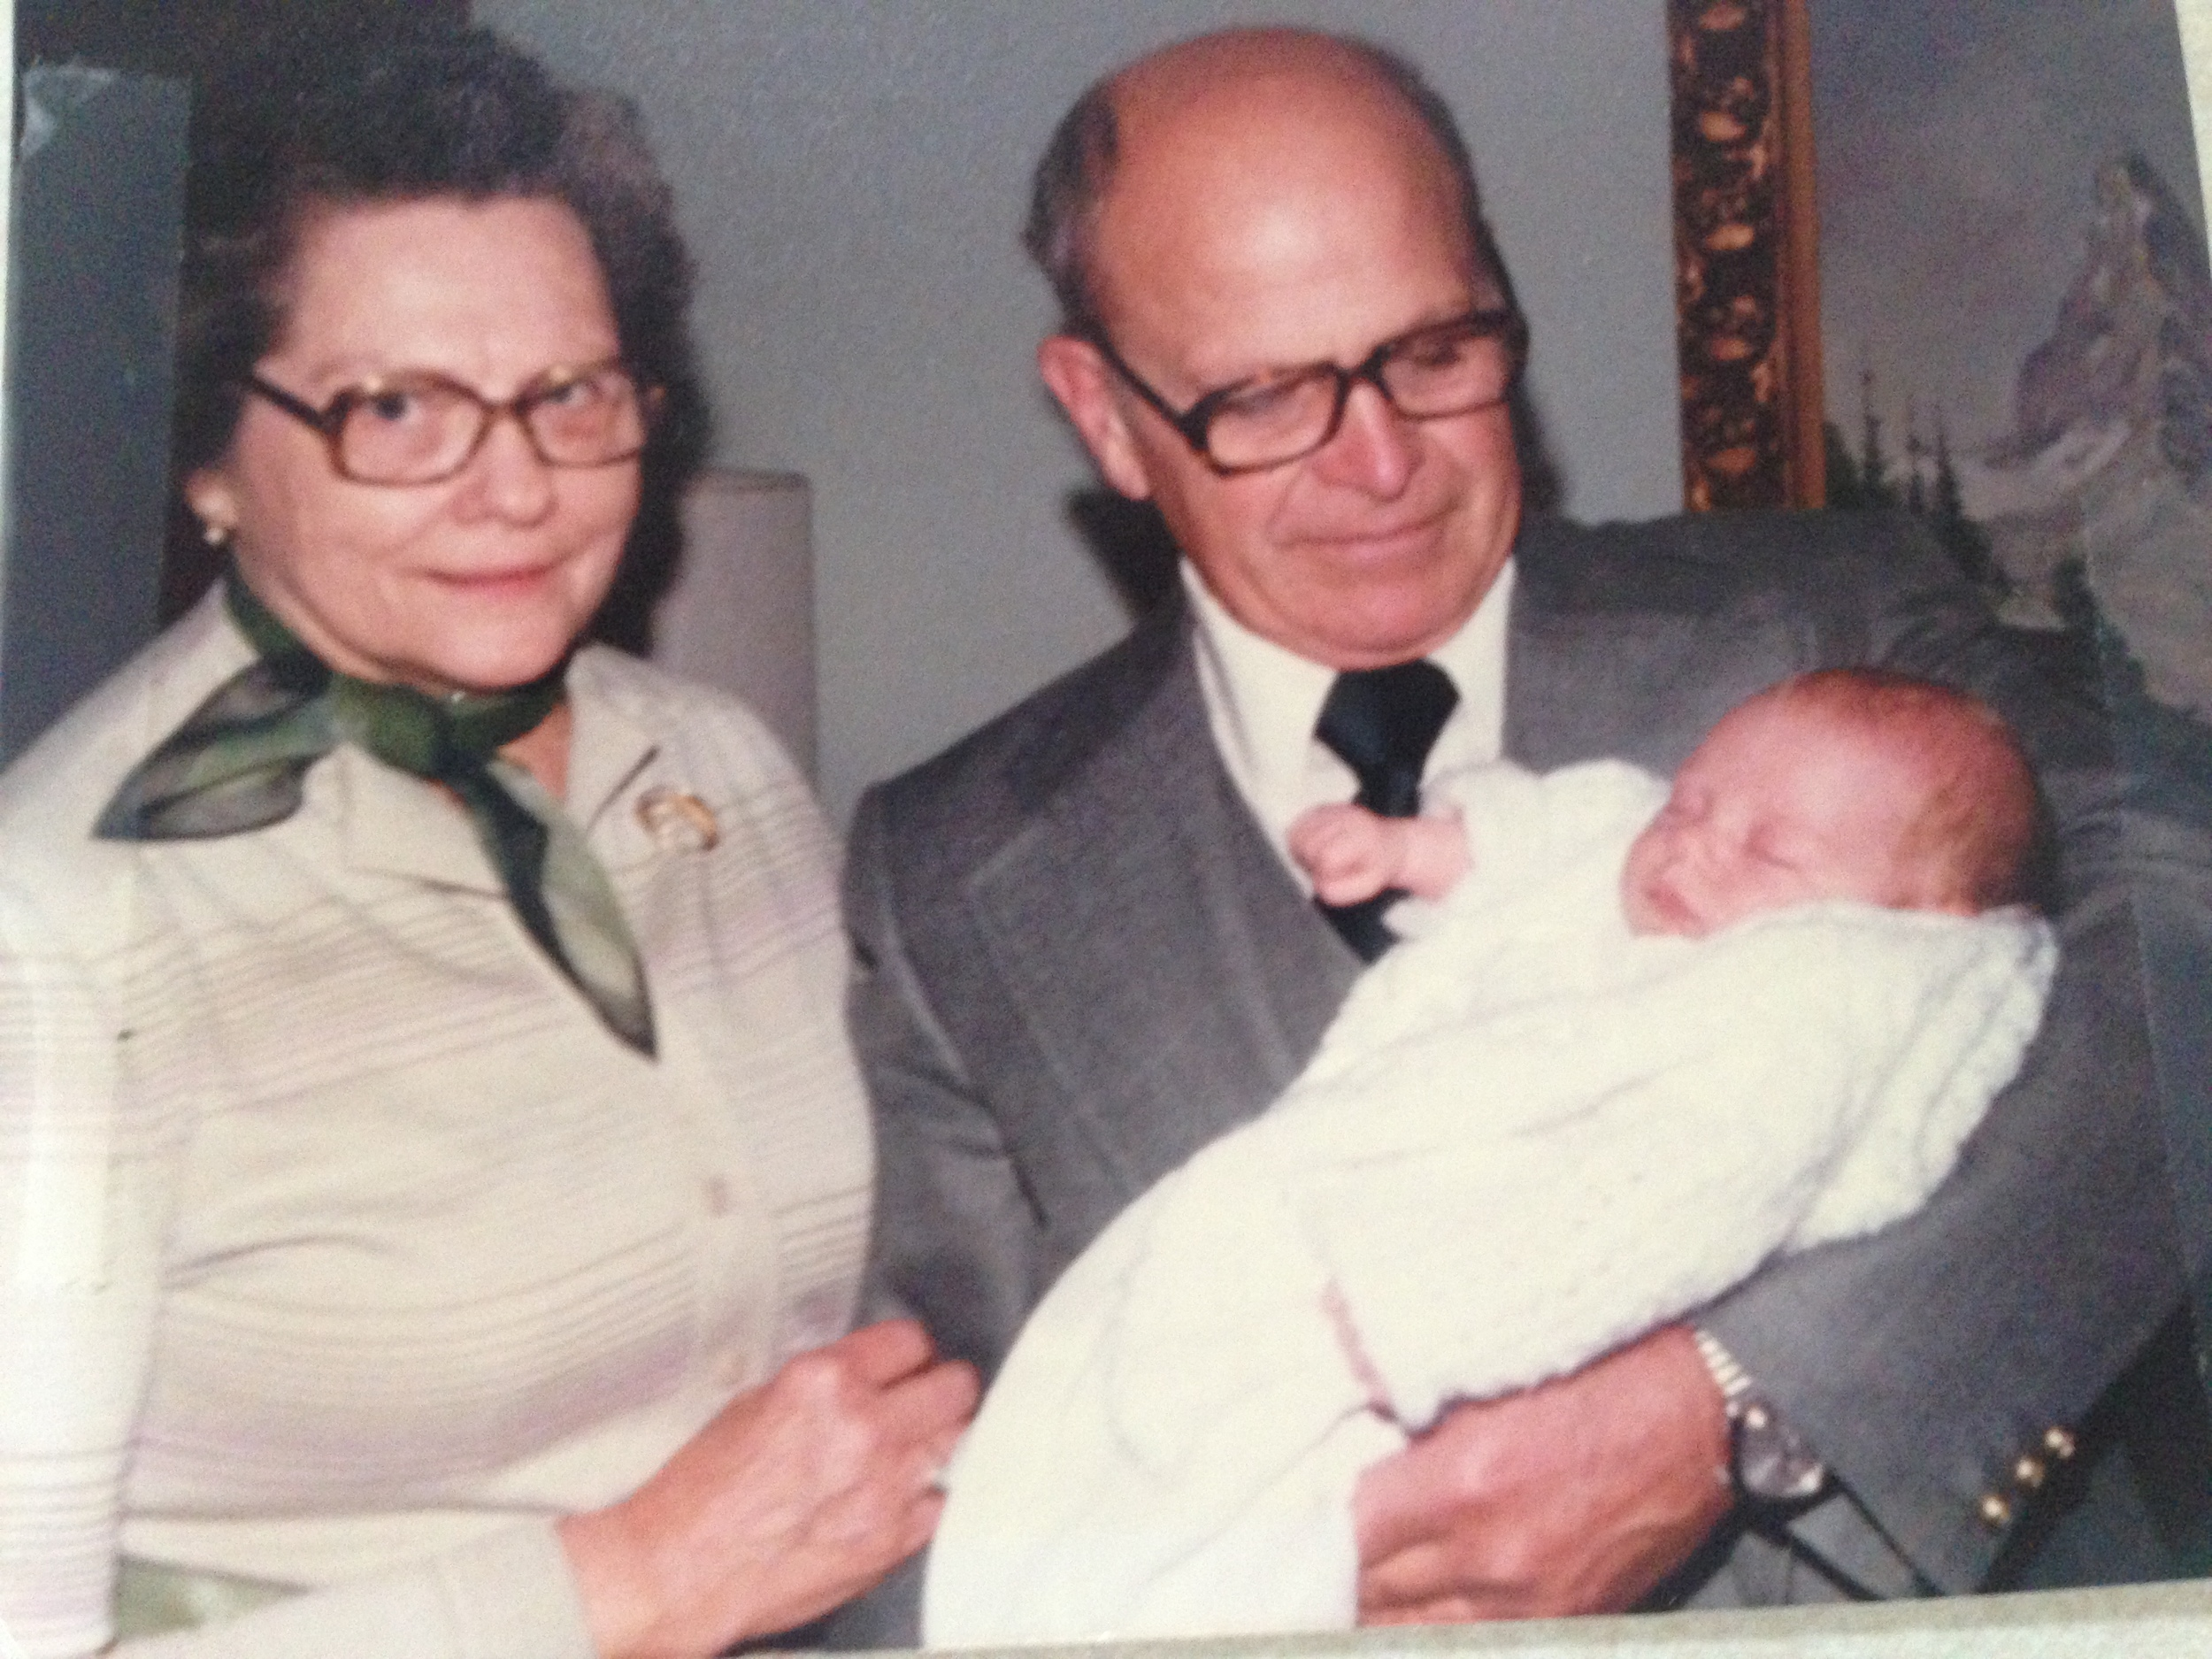 My grandpa holding me with my grandma looking on.